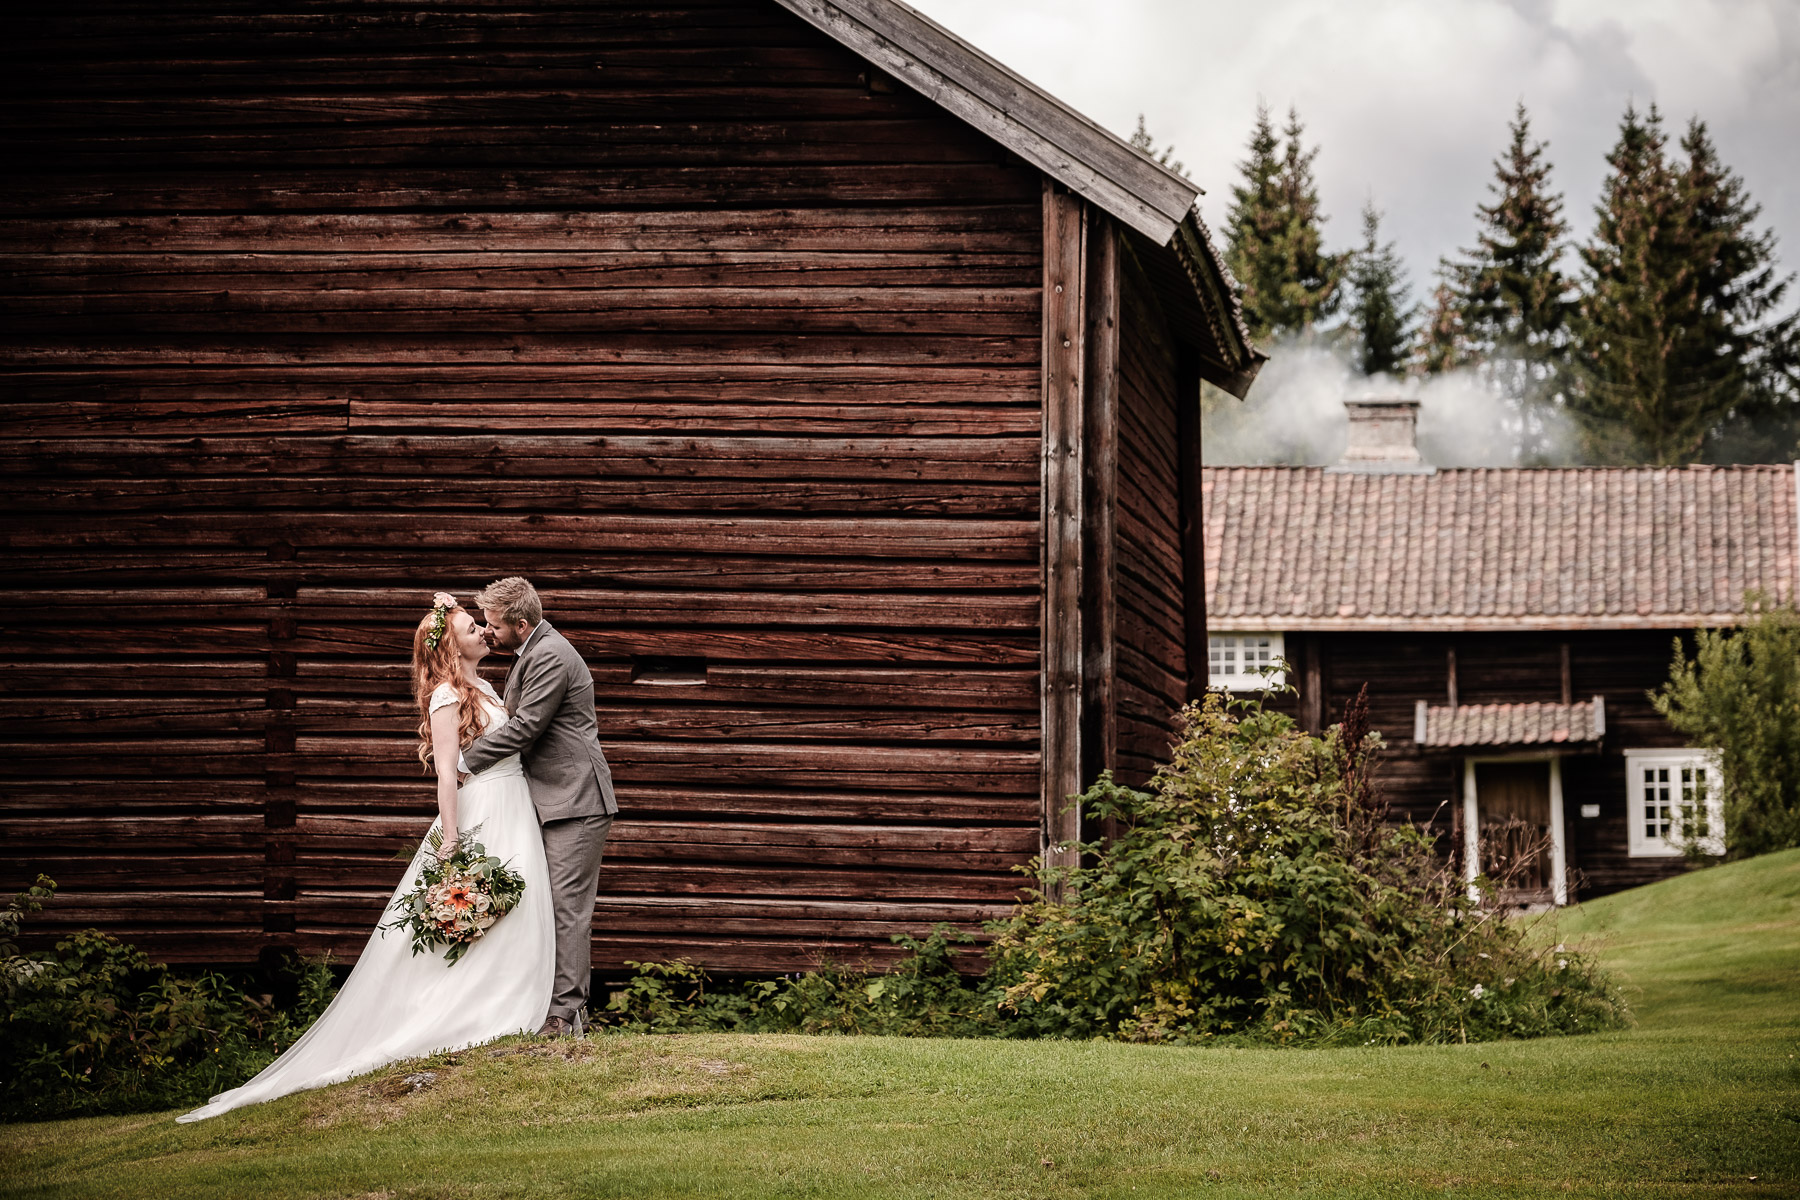 Click to enlarge image elise-christoffer-eidsvoll-ottossonphoto-1030.jpg